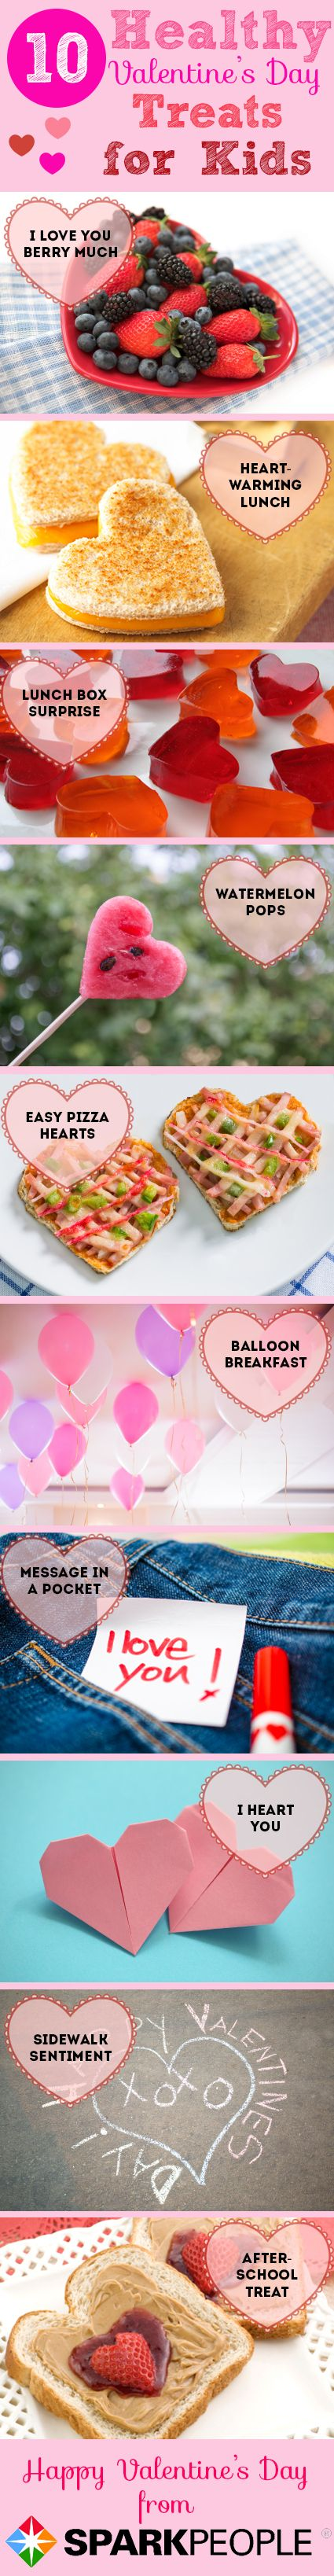 Kid-Friendly Valentine's Day Surprises--that are healthy! Click for recipes/instructions.